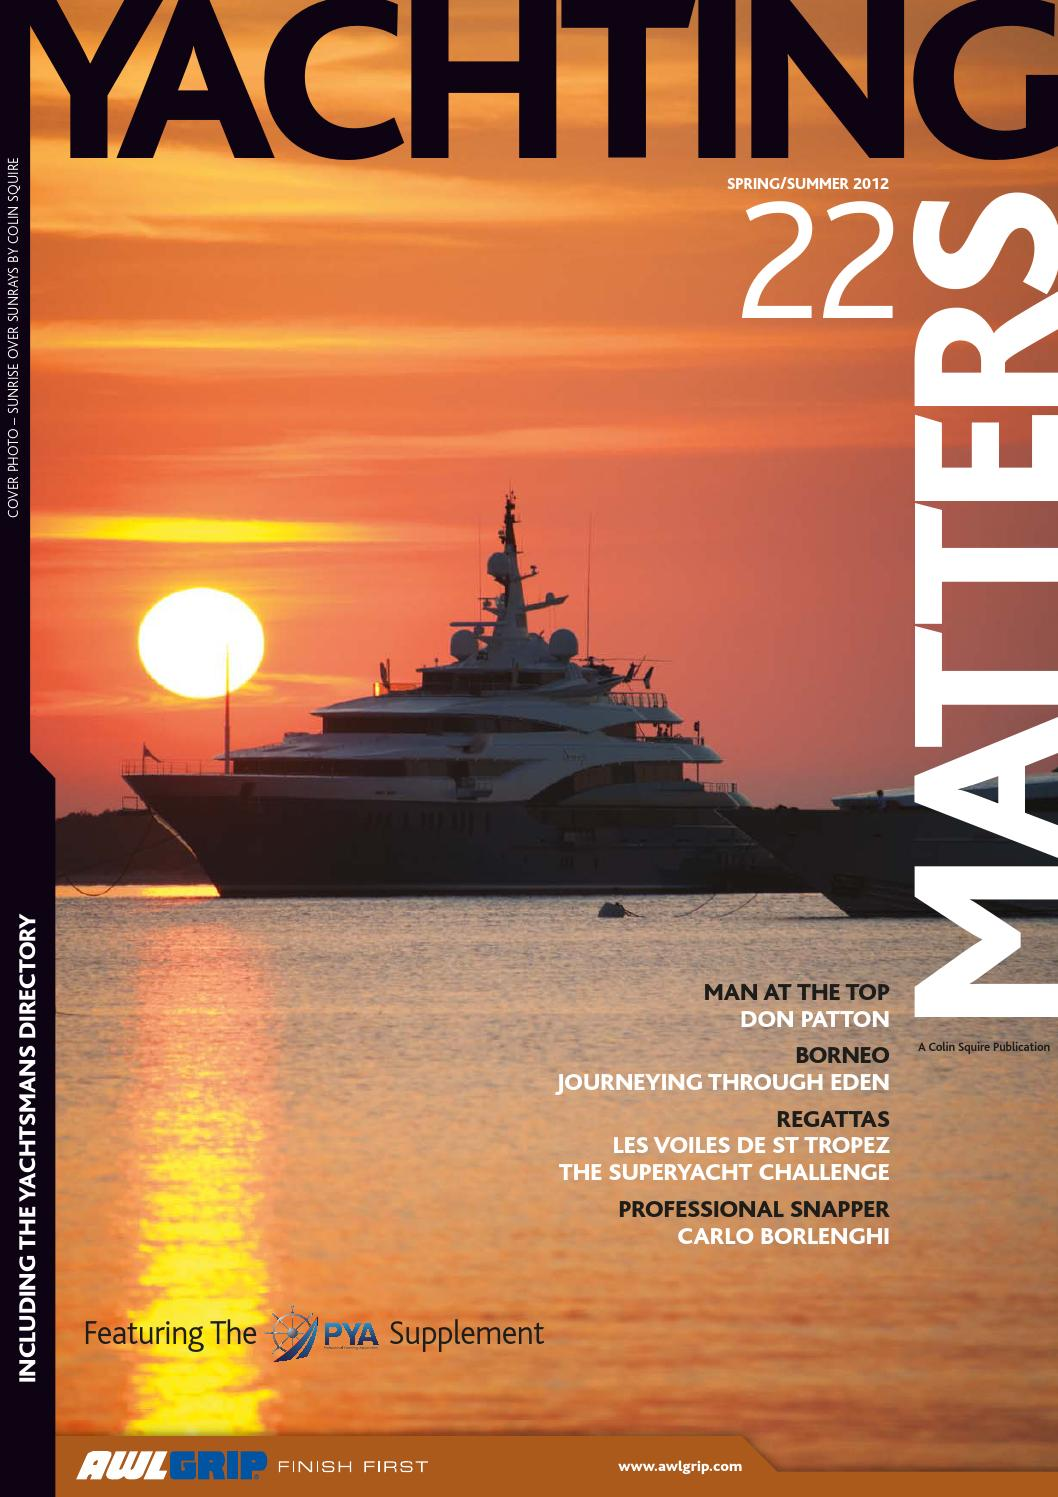 741b9911958b Yachting Matters - 22 - Spring Summer 2012 by Yachting Matters - issuu